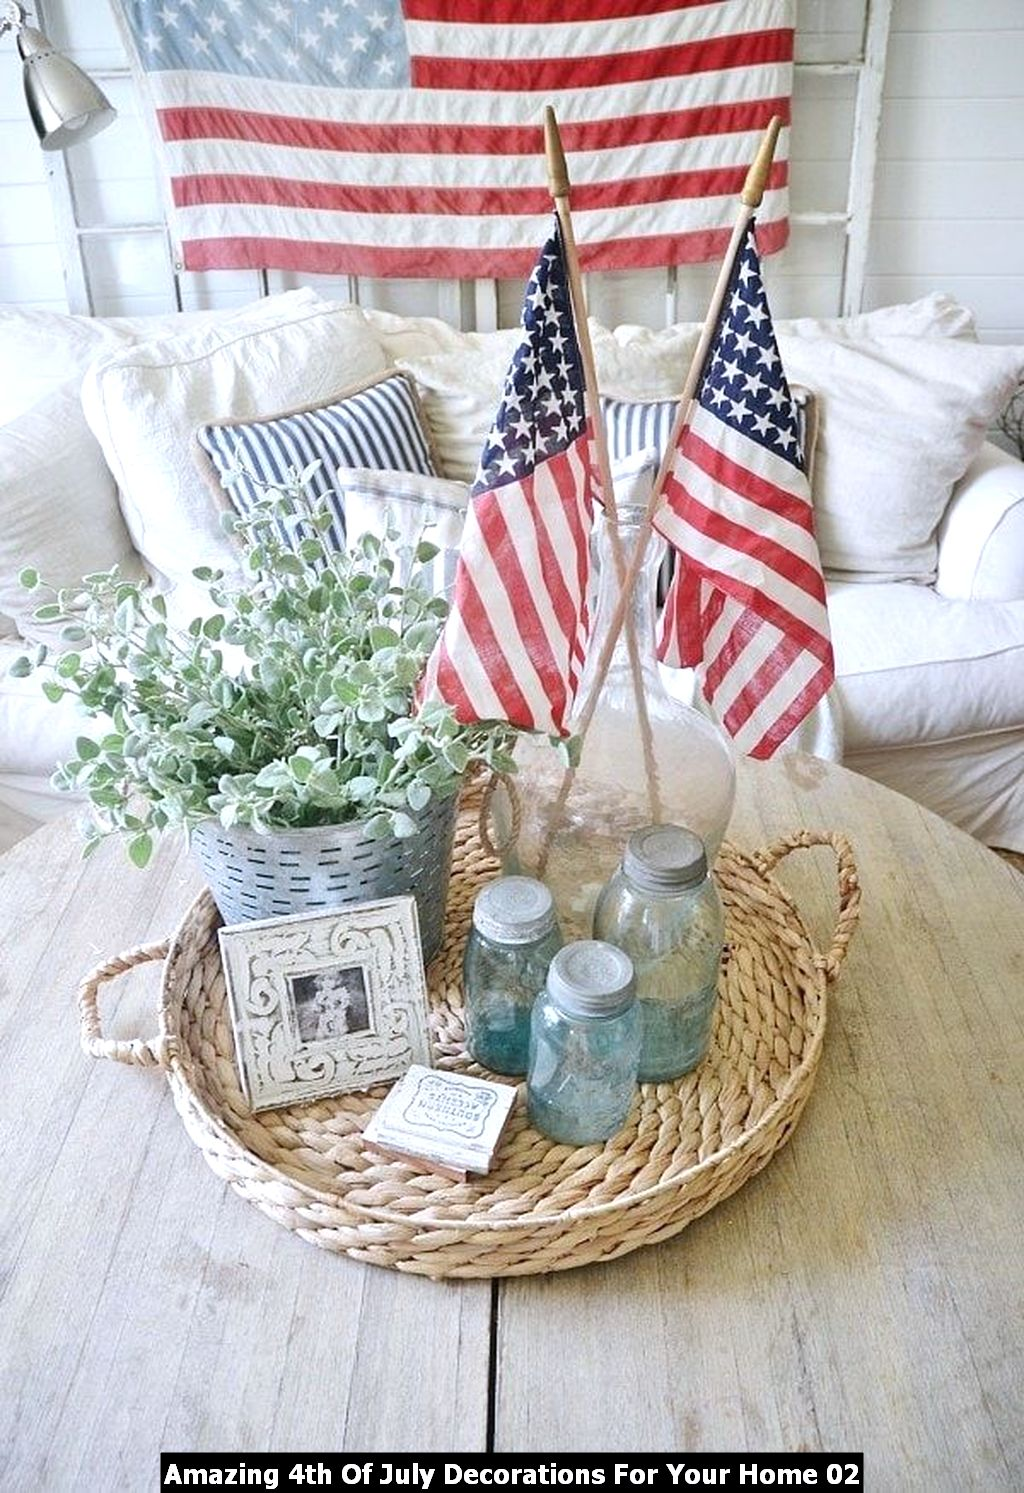 Amazing 4th Of July Decorations For Your Home 02